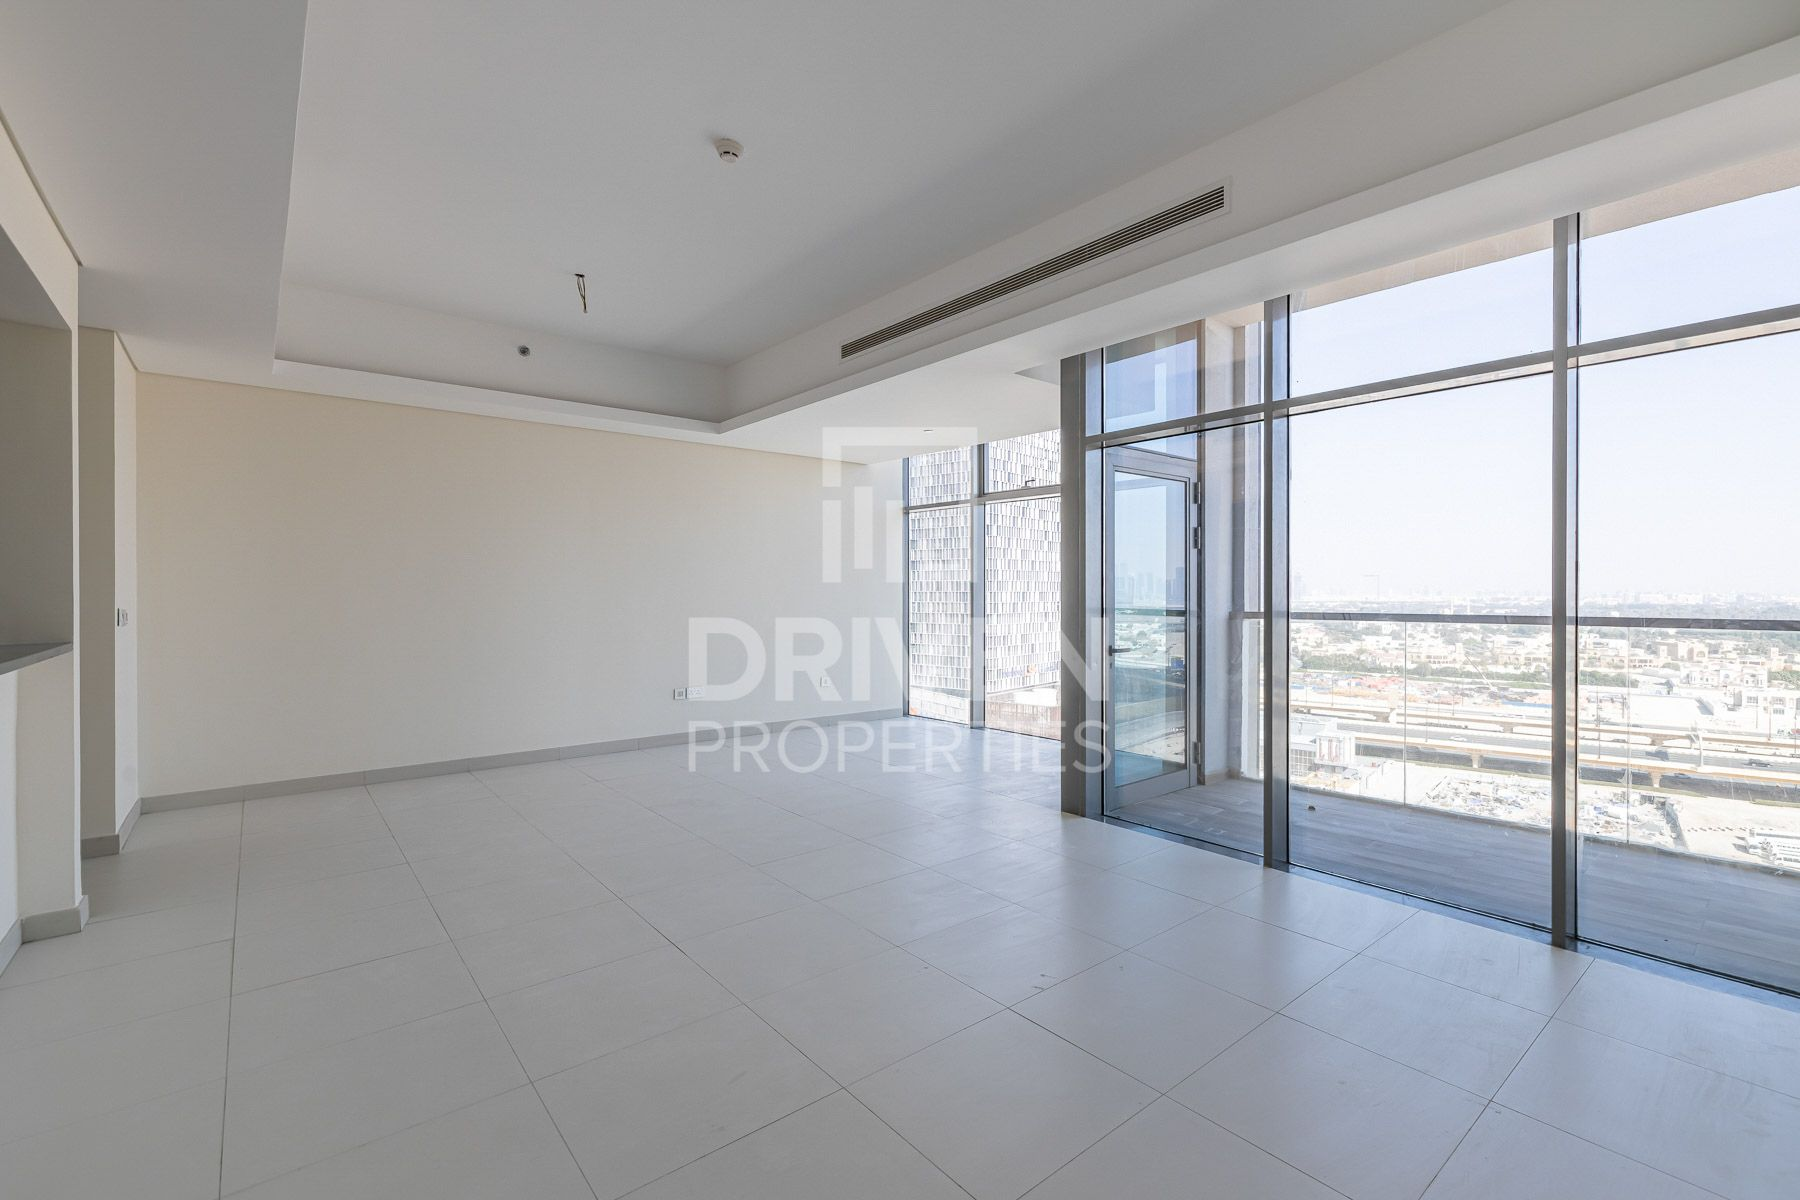 Apartment for Sale in Mada Residences by ARTAR - Downtown Dubai